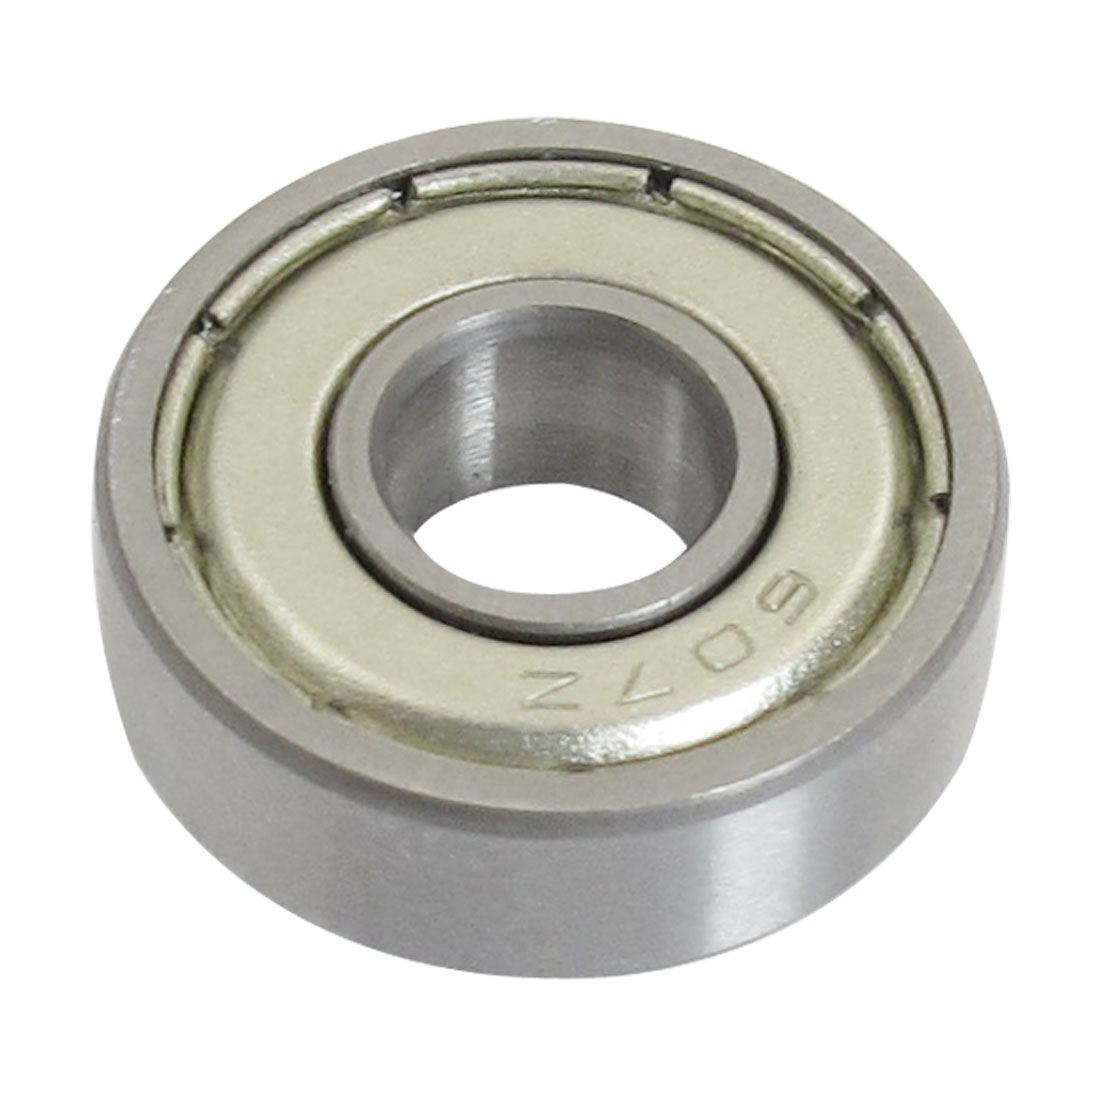 7 x 19 x 6mm 607 Shielded Miniature Deep Groove Radial Ball Bearing